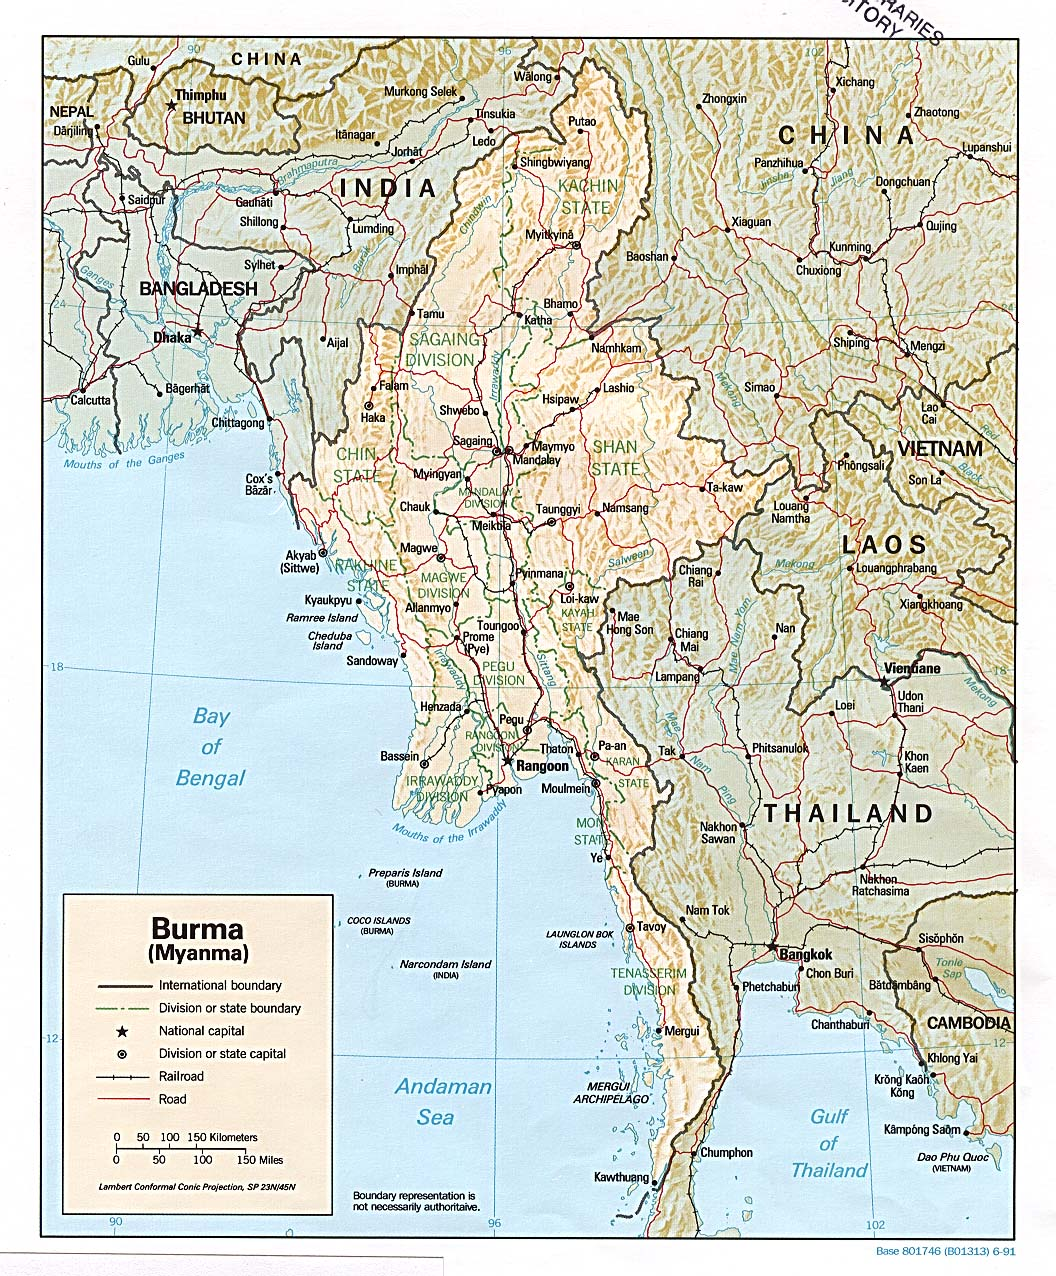 Online burma library reading room maps and satellite imagery title burma shaded relief map 1991 publicscrutiny Image collections